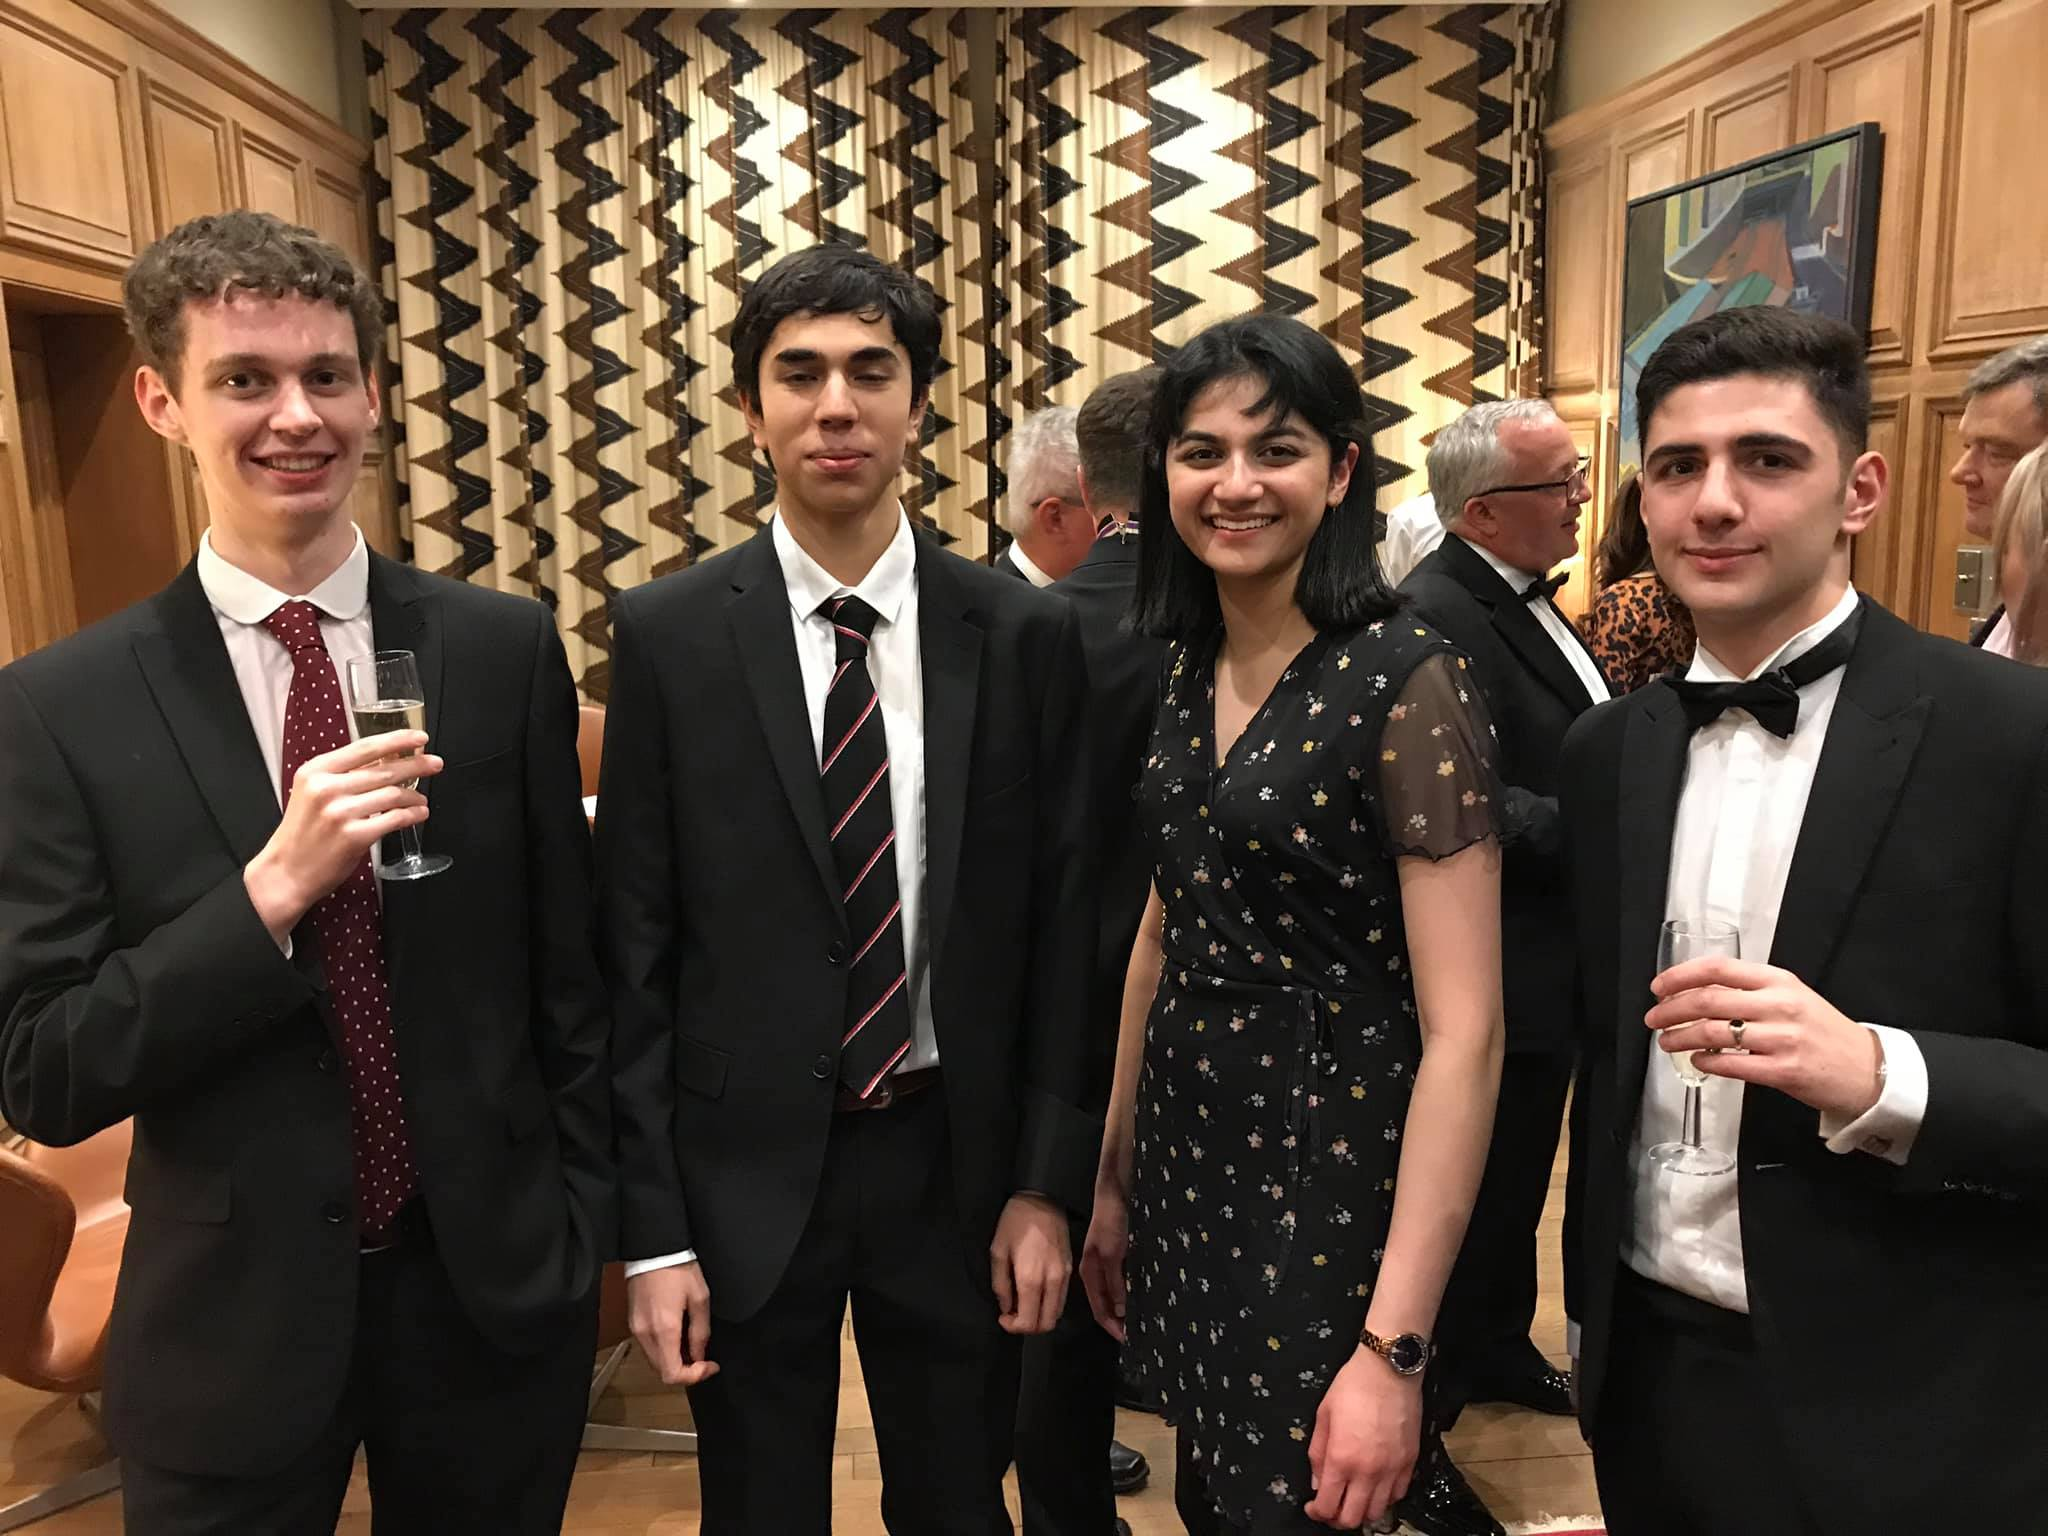 Oxford Dinner 2020 Photos promo